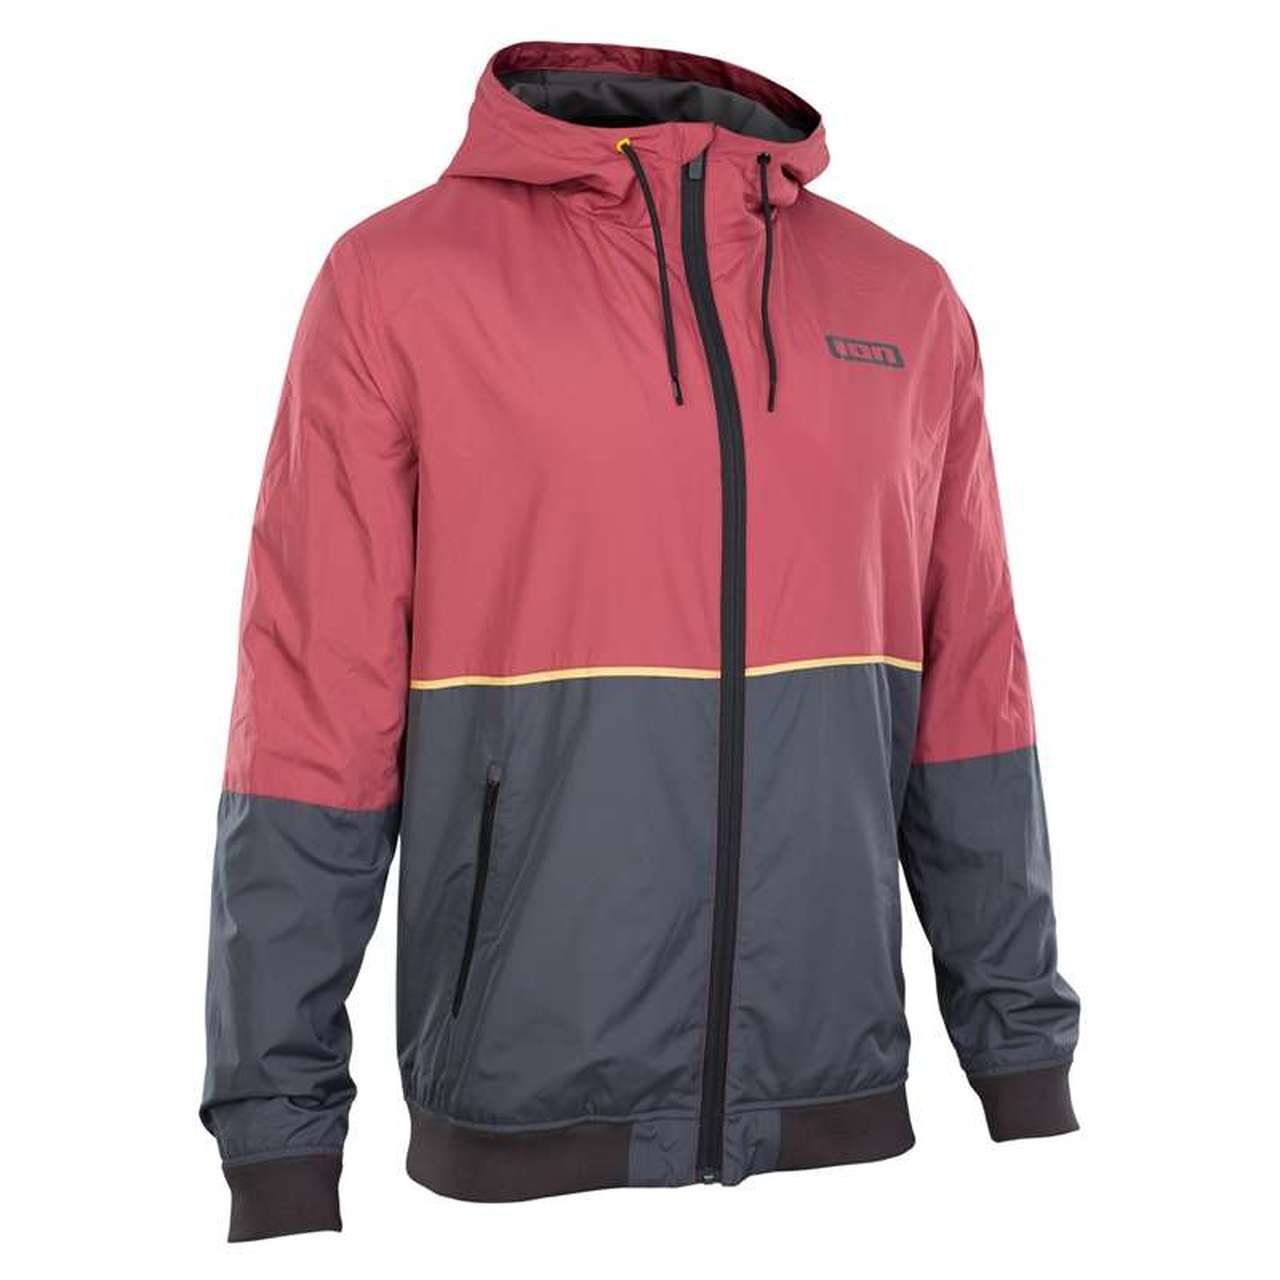 The Best Tips to Buy Custom Windbreaker Jackets In Newcastle Australia 2020